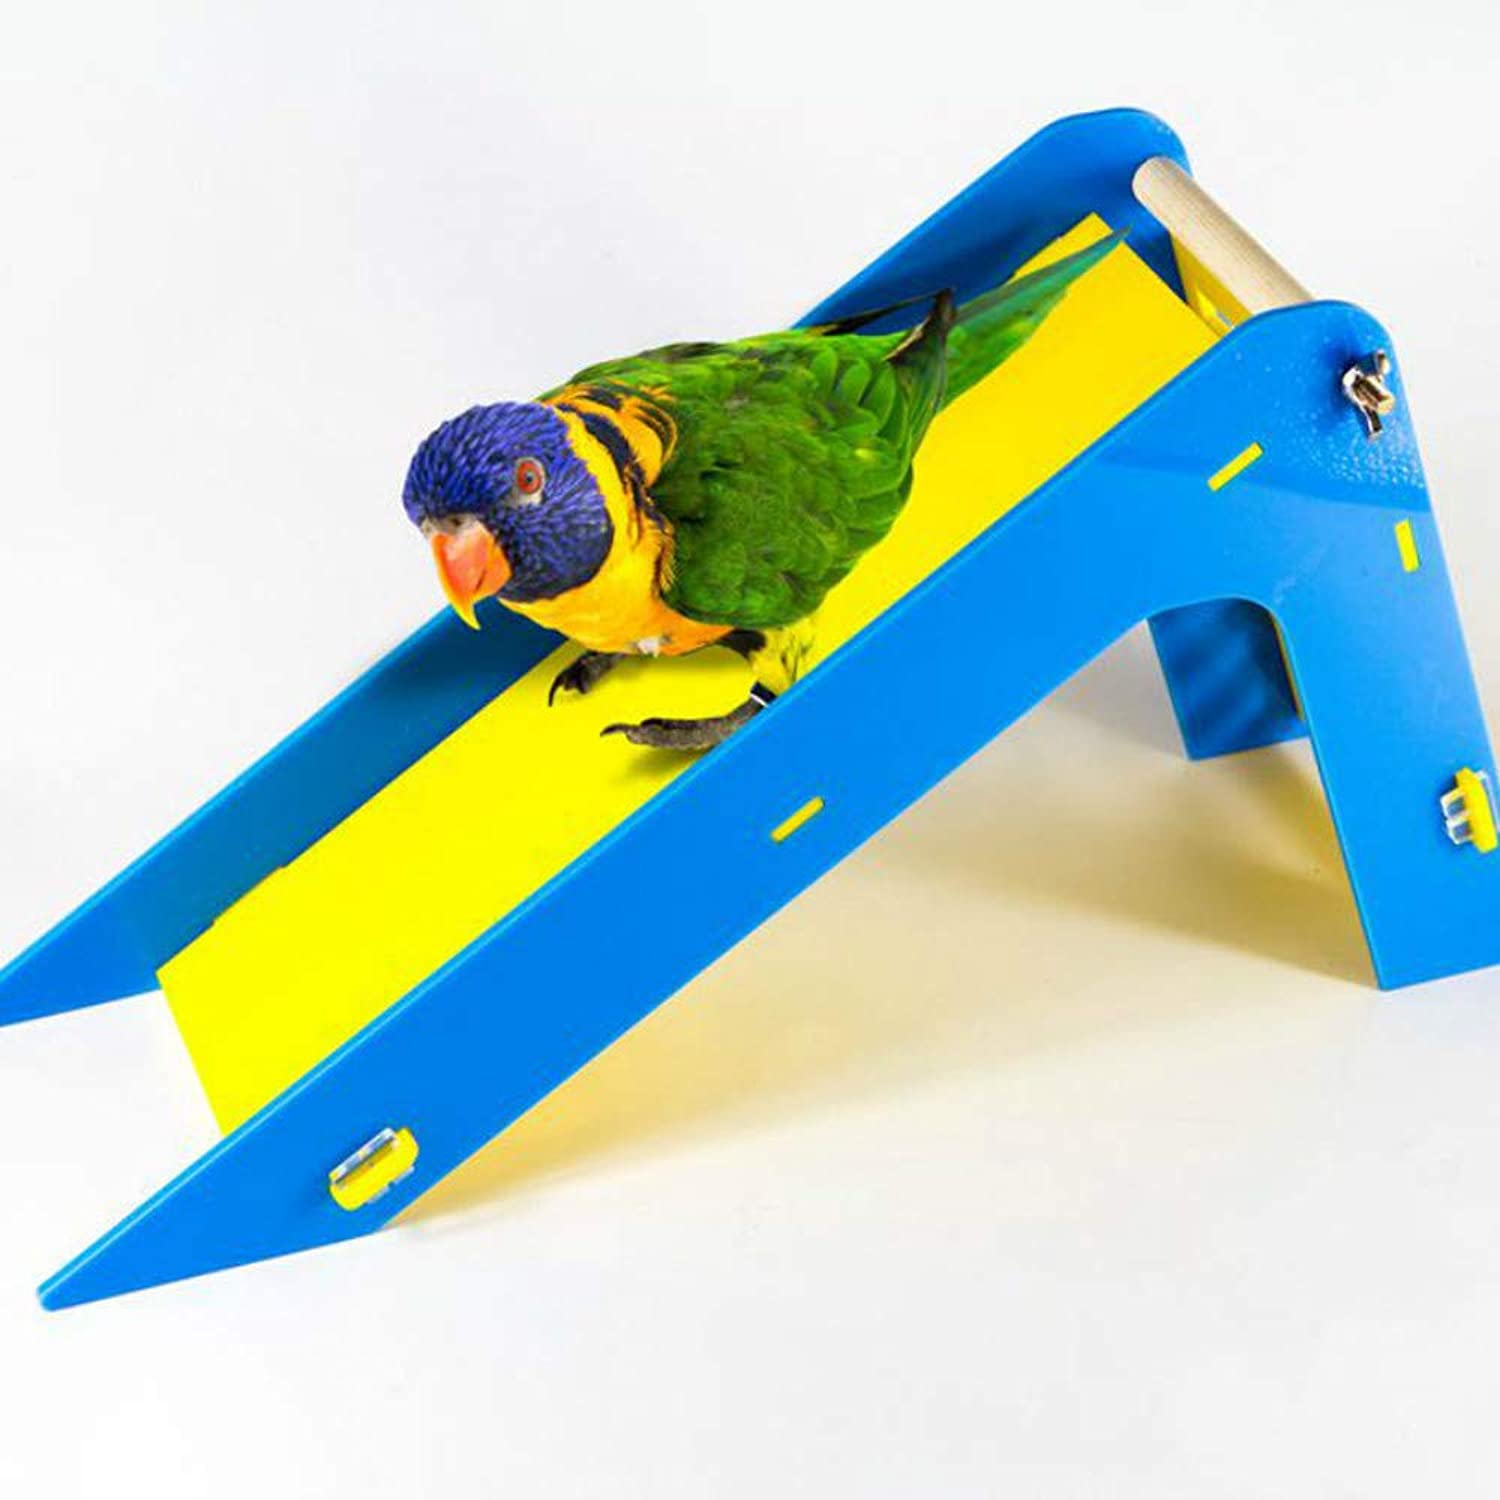 1 PCS Parred pet Bird Puzzle Development Toy Skill Training Parred Climbing Ladder Slide AP10151703PY